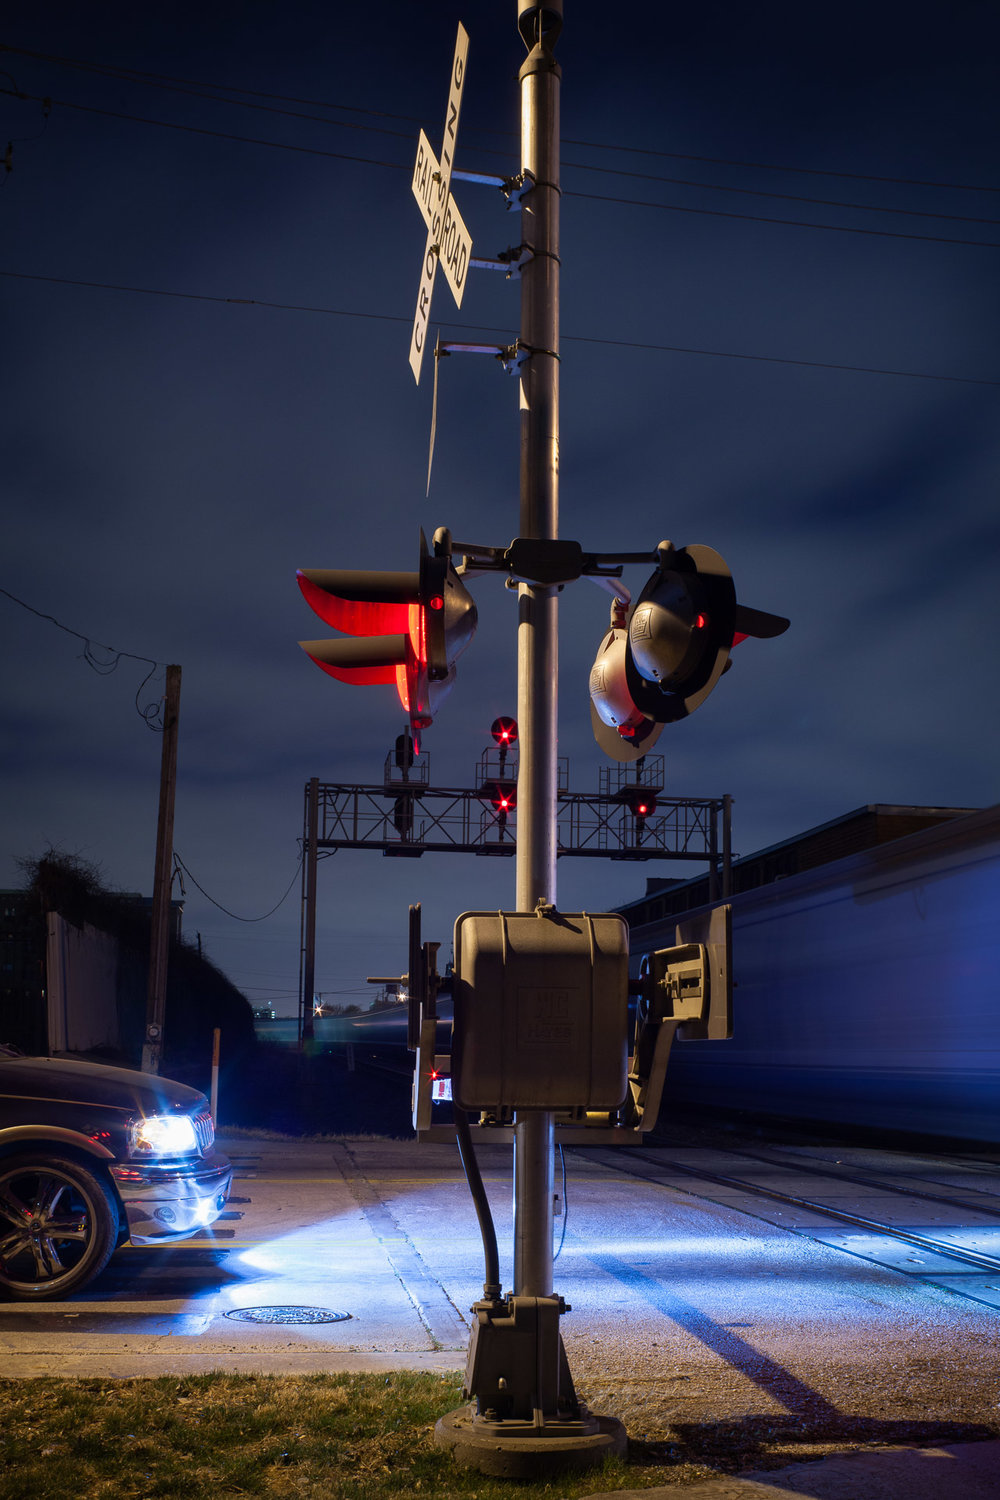 An SUV waits at the rail crossing, Houston, Texas, 2011.  Canon 5D Mark II  with a  50mm f/1.4  lens. 15 seconds, f/8, ISO 200. Everything came together in this spontaneous image–– the timing of the train, the composition and the lighting. The red warning light at the crossing provides a color accent and the cool xenon headlights of the SUV illuminate the passing train.